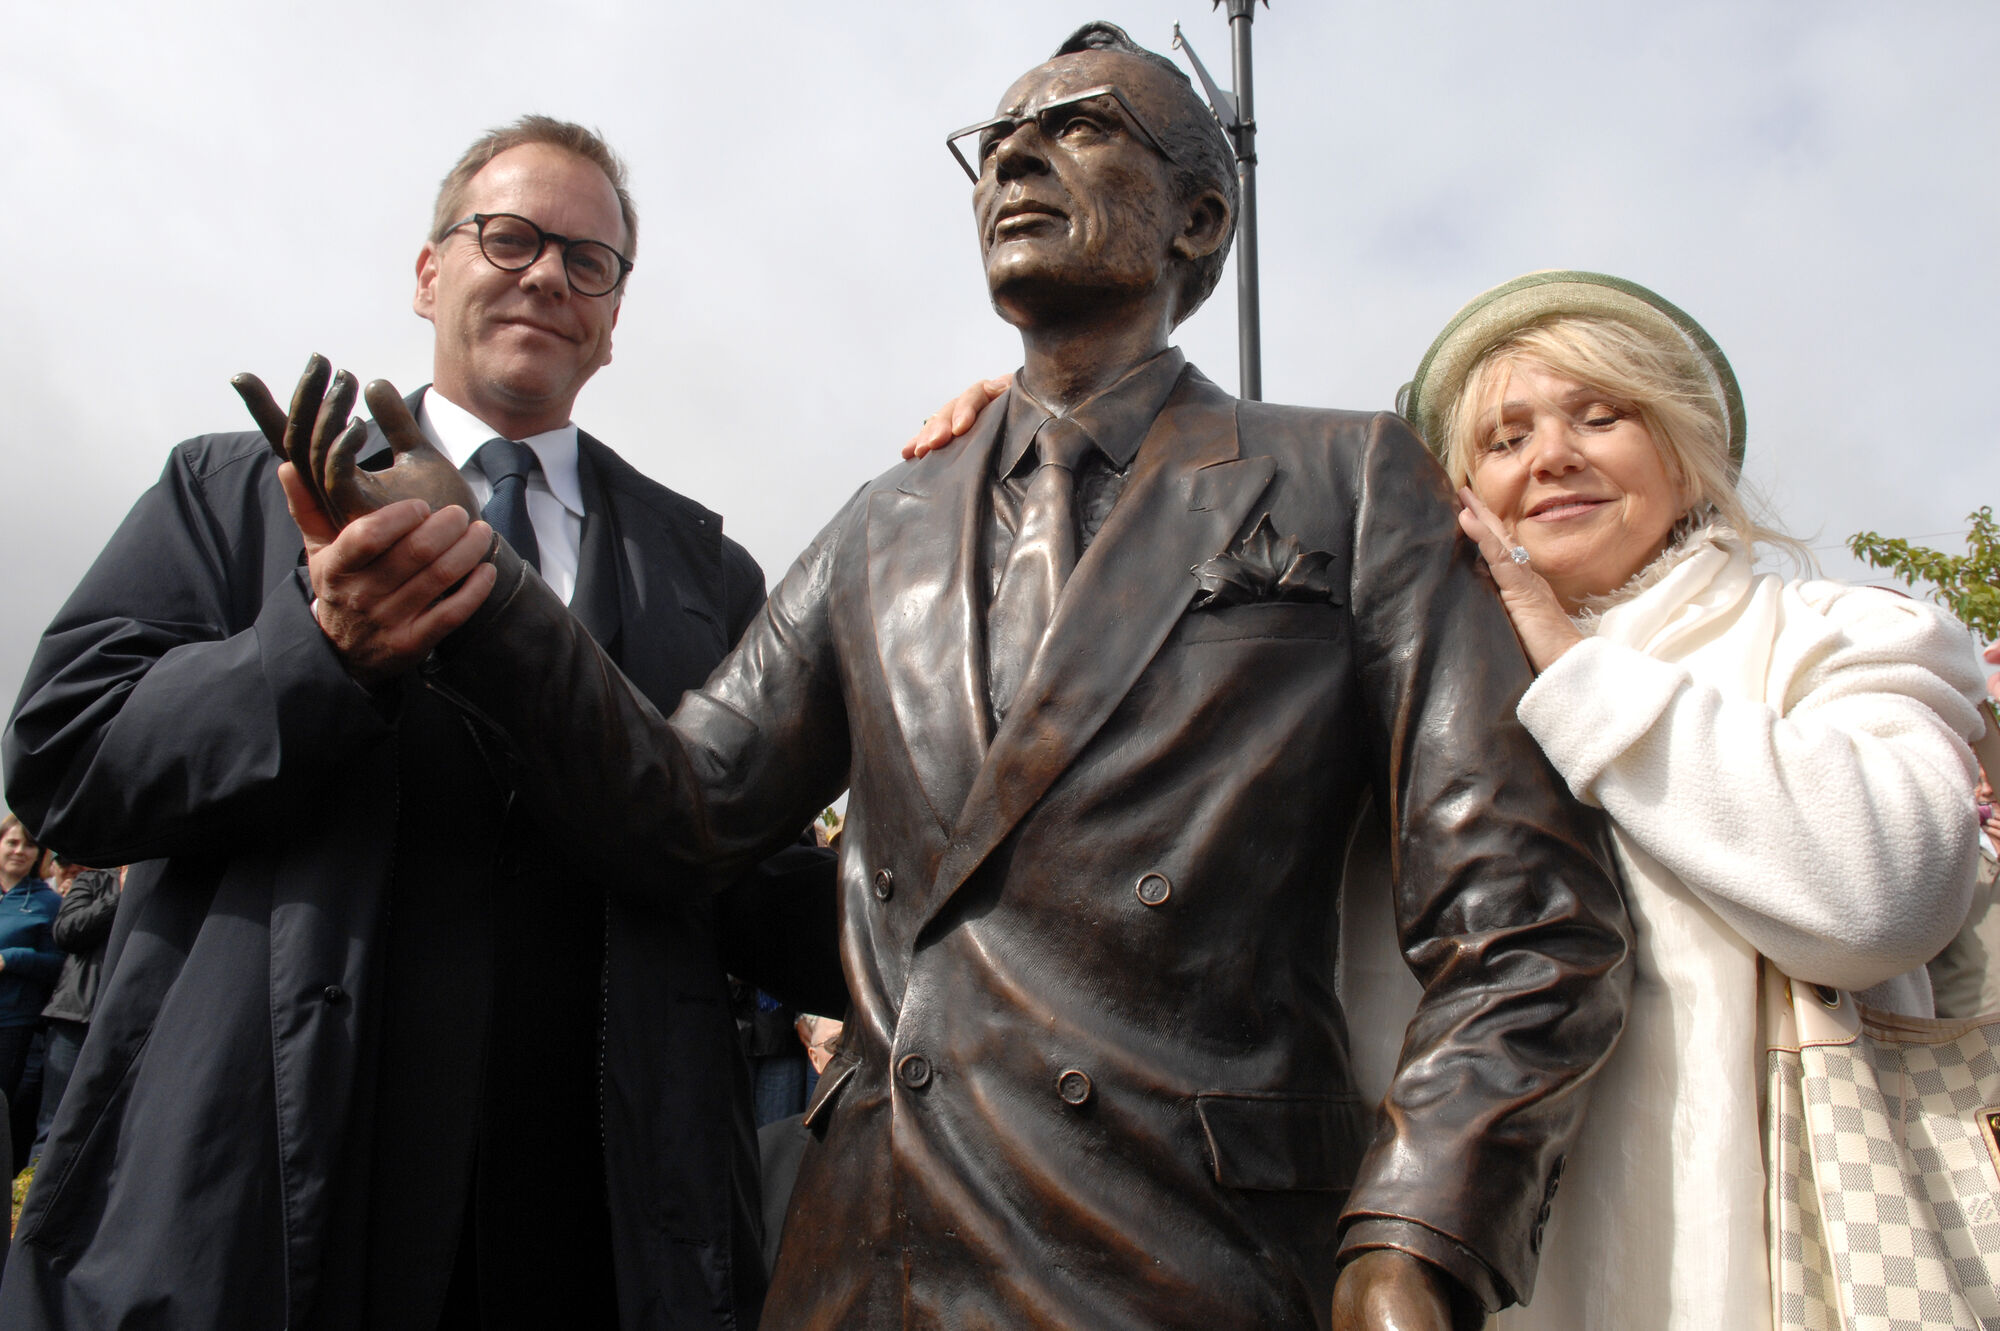 Canadian actor Kiefer Sutherland (left), grandson of former Saskatchewan premier Tommy Douglas, with world-renowned sculptor Lea Vivot beside a statue of Douglas, commonly known for bringing universal health care to Canada.